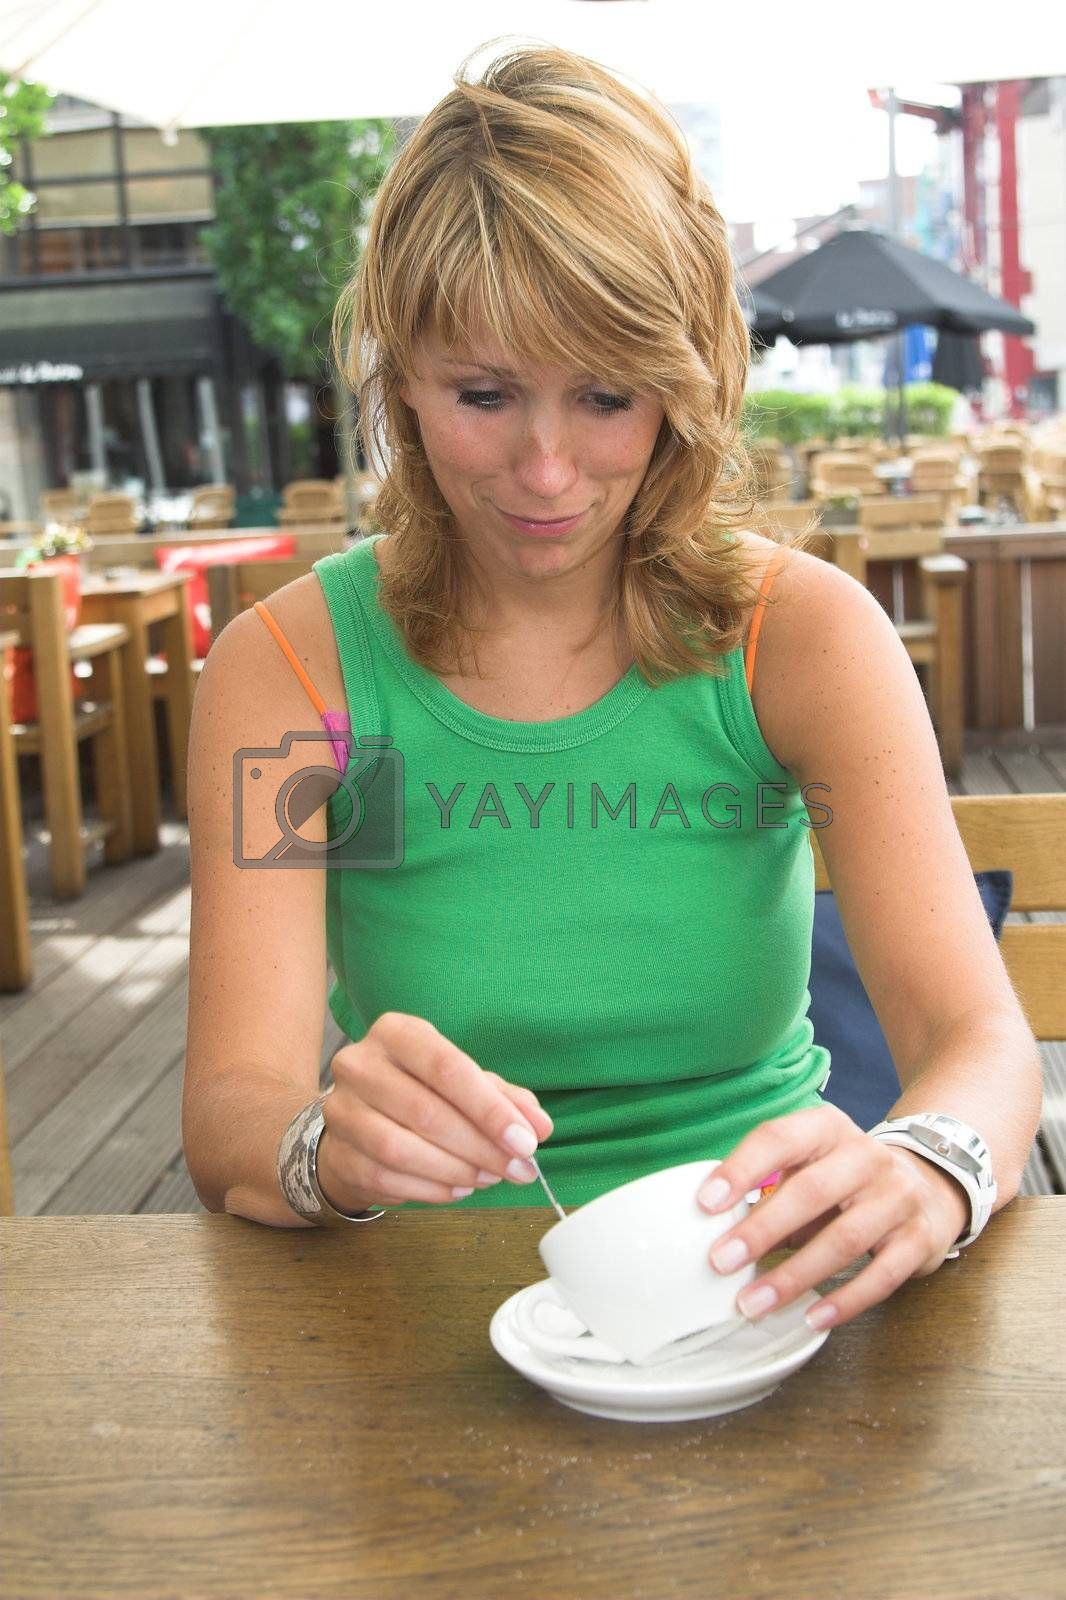 Pretty blond girl pulling a face because her coffeecup is empty